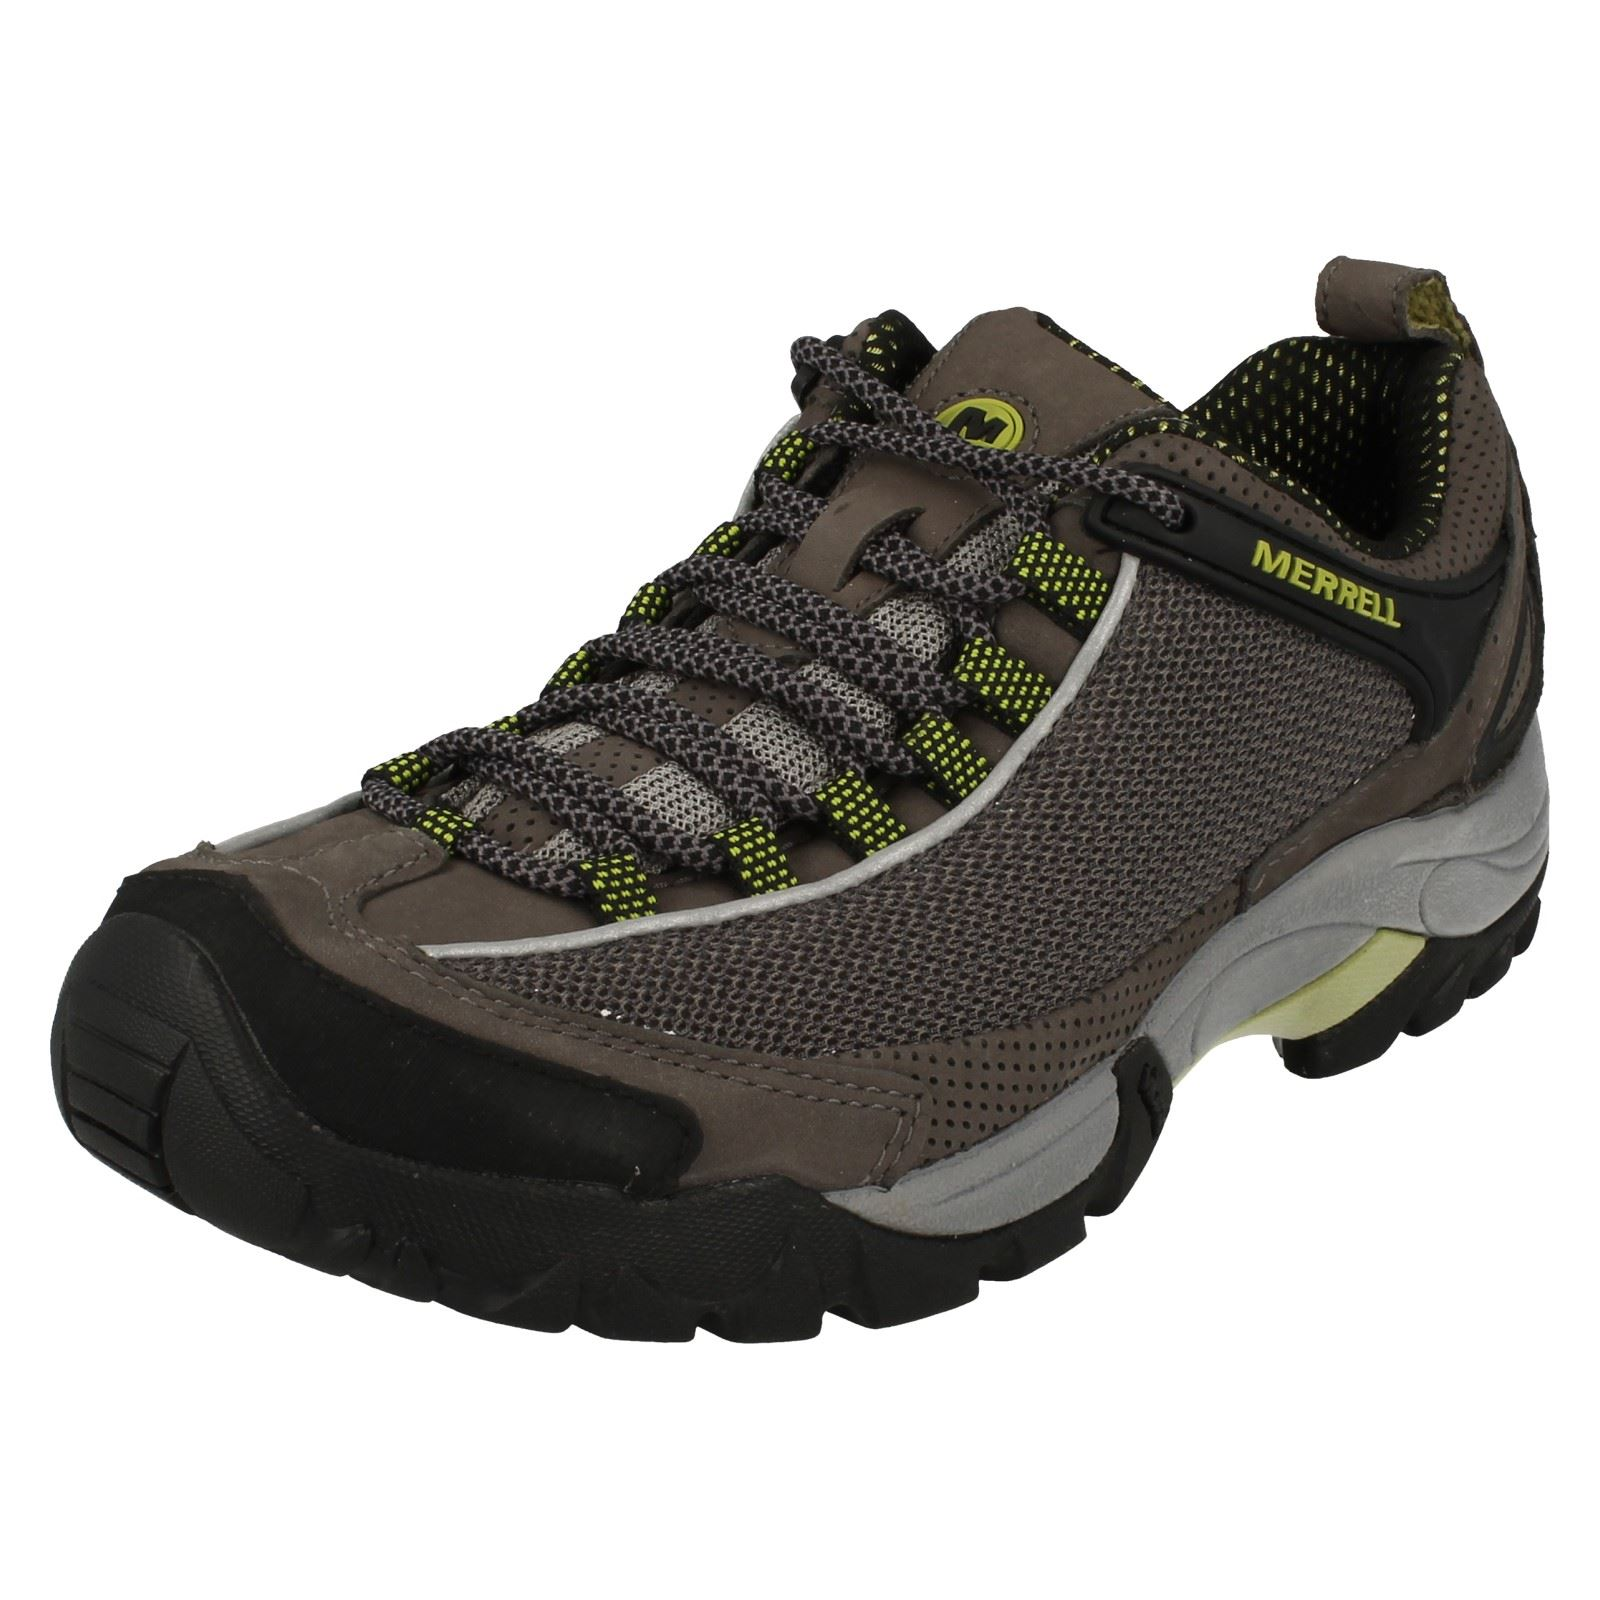 4877980de155ad Mens Merrell Casual Trainers J16229 Scout Castle Rock  Amazon UK 7 Medium.  About this product. Picture 1 of 10  Picture 2 of 10 ...